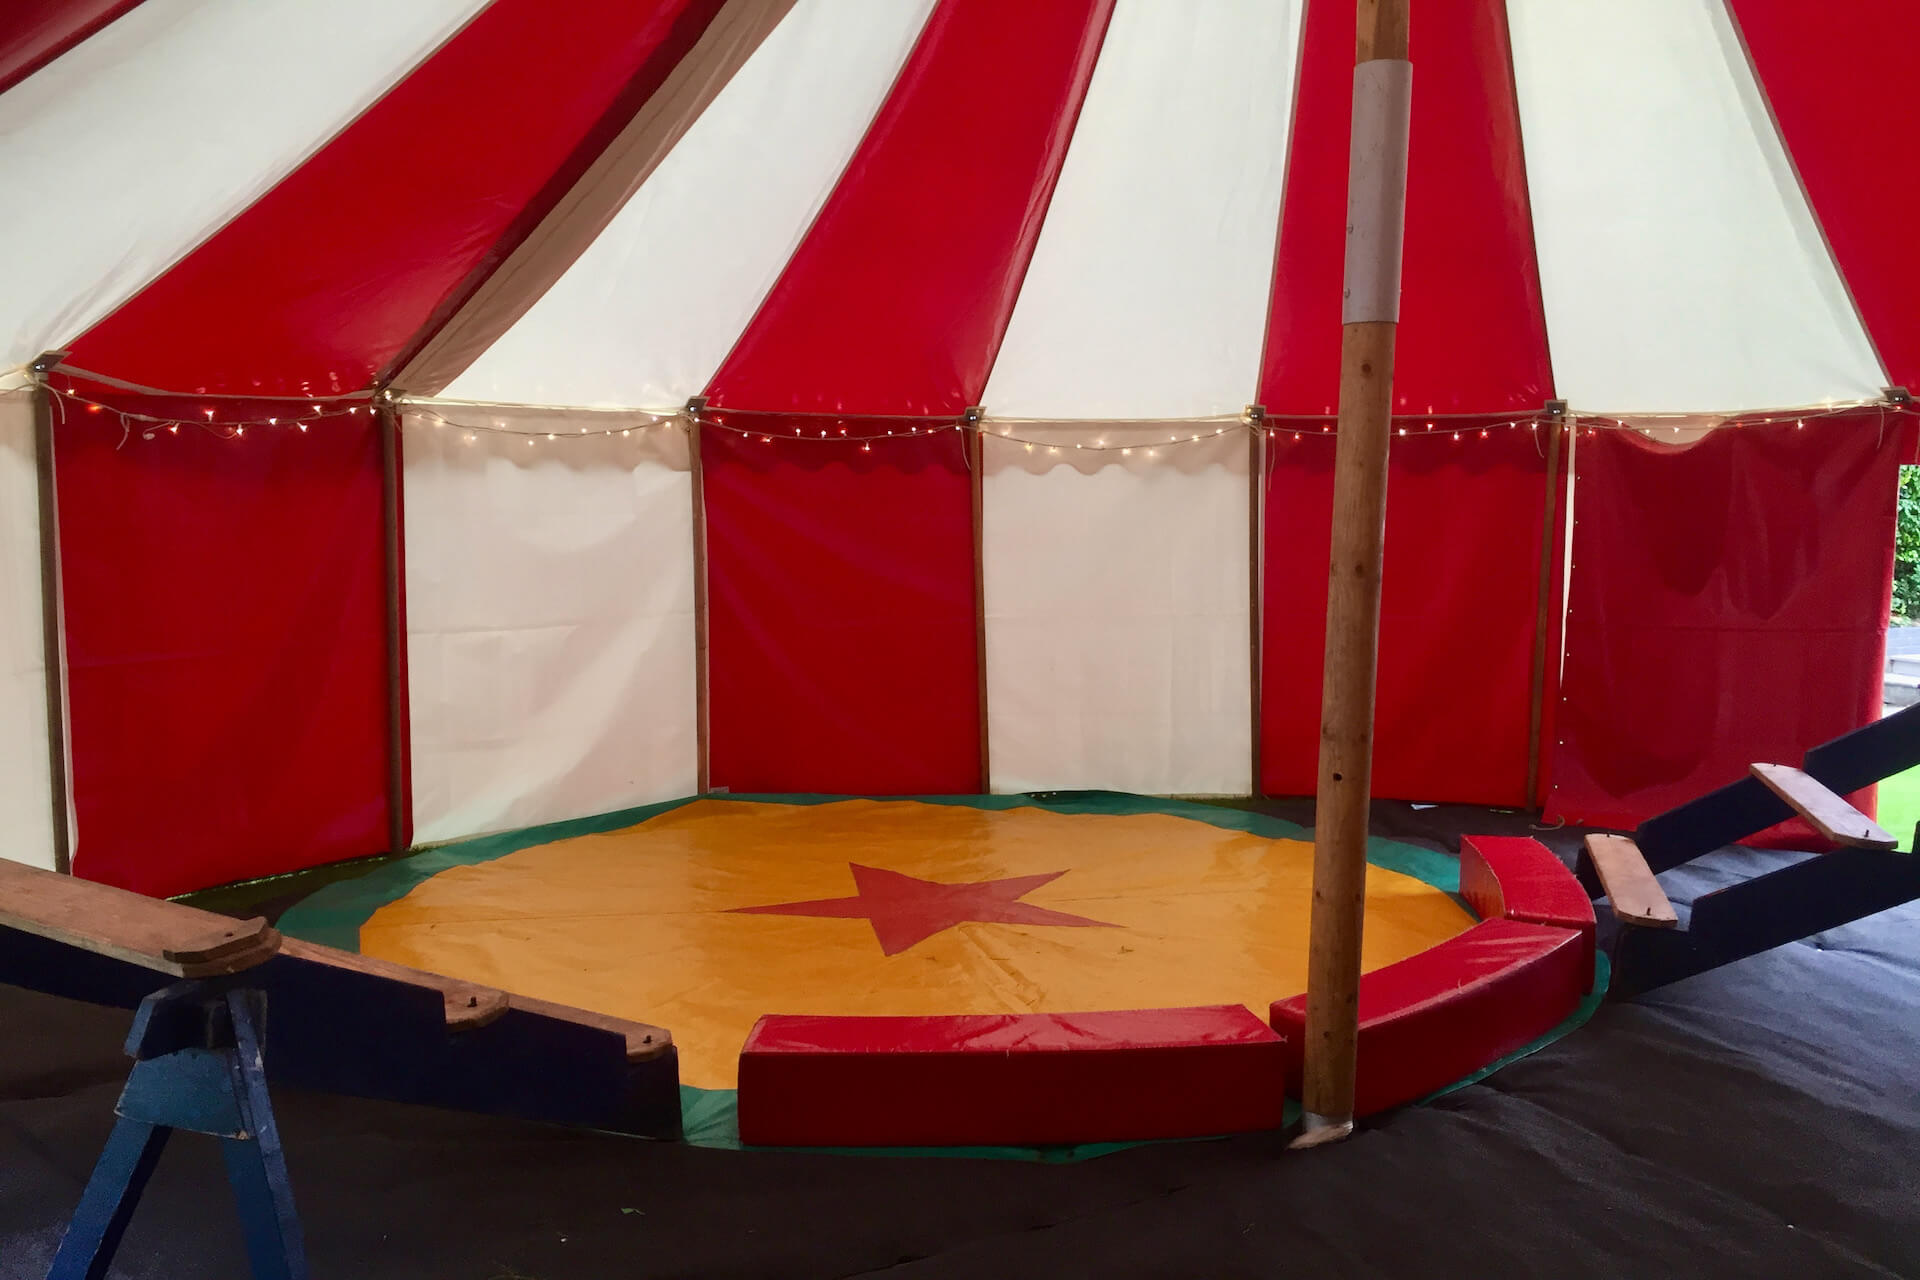 Small circus show